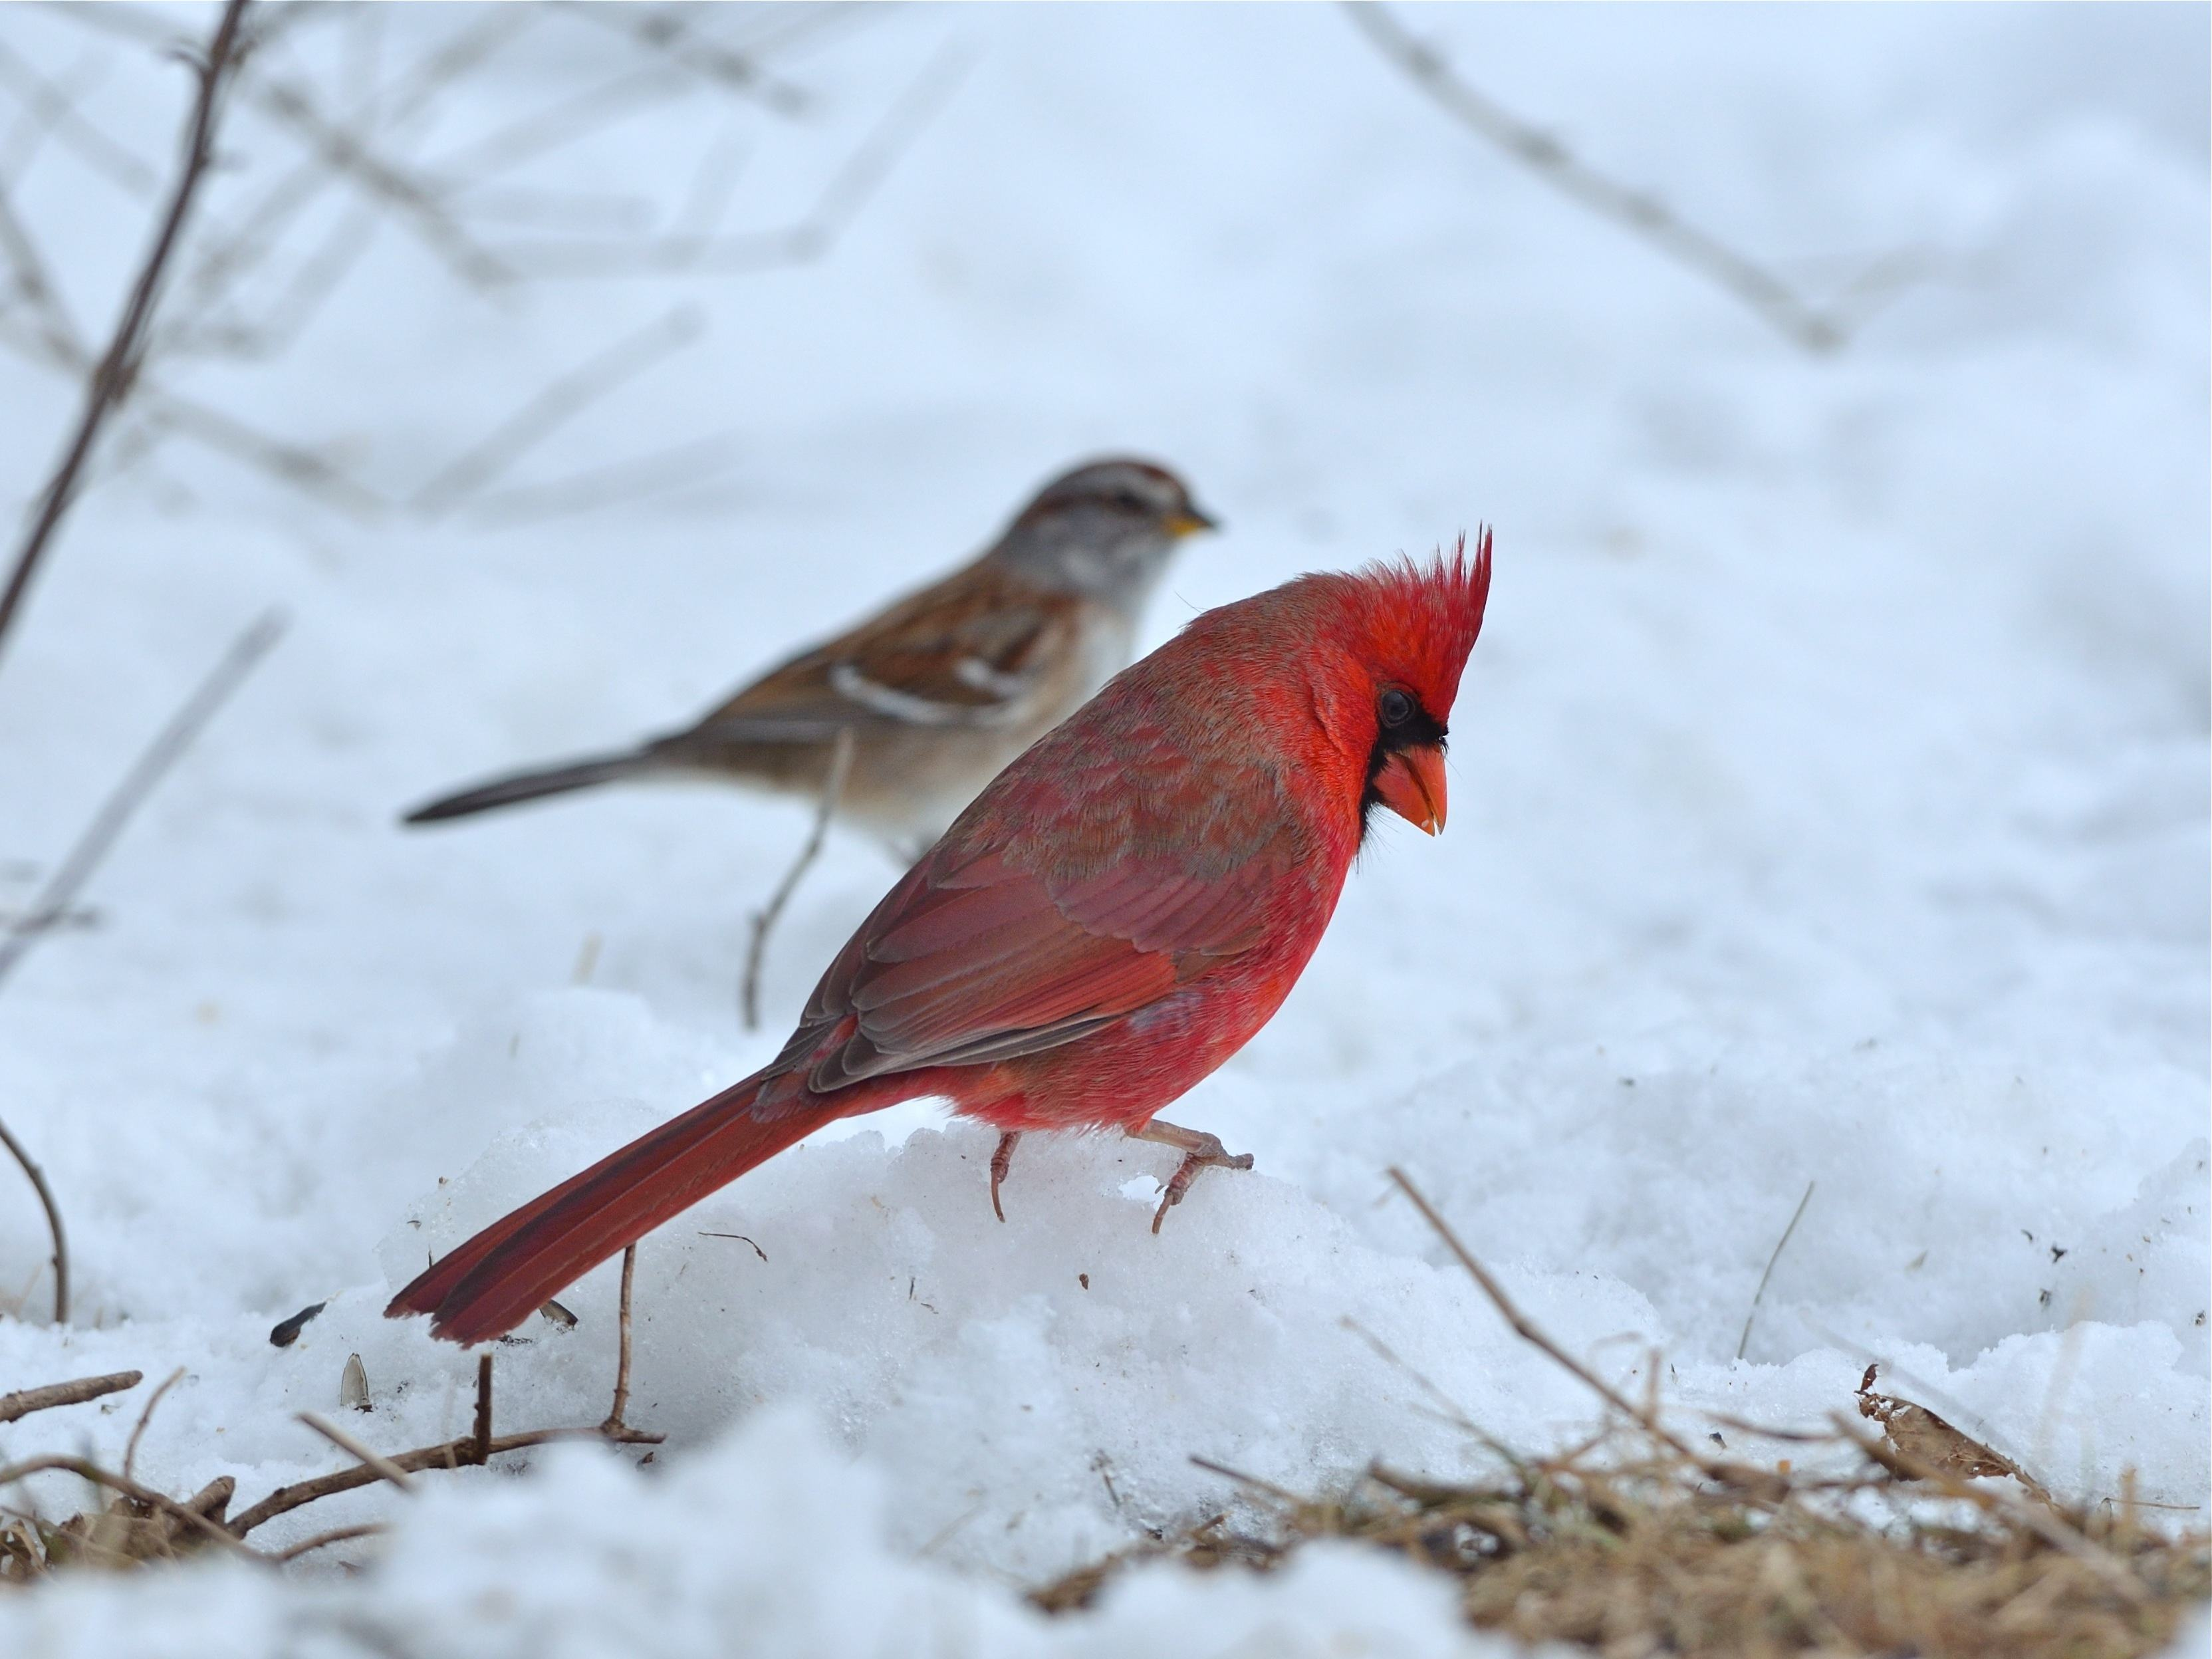 Northern Cardinal and American Tree Sparrow